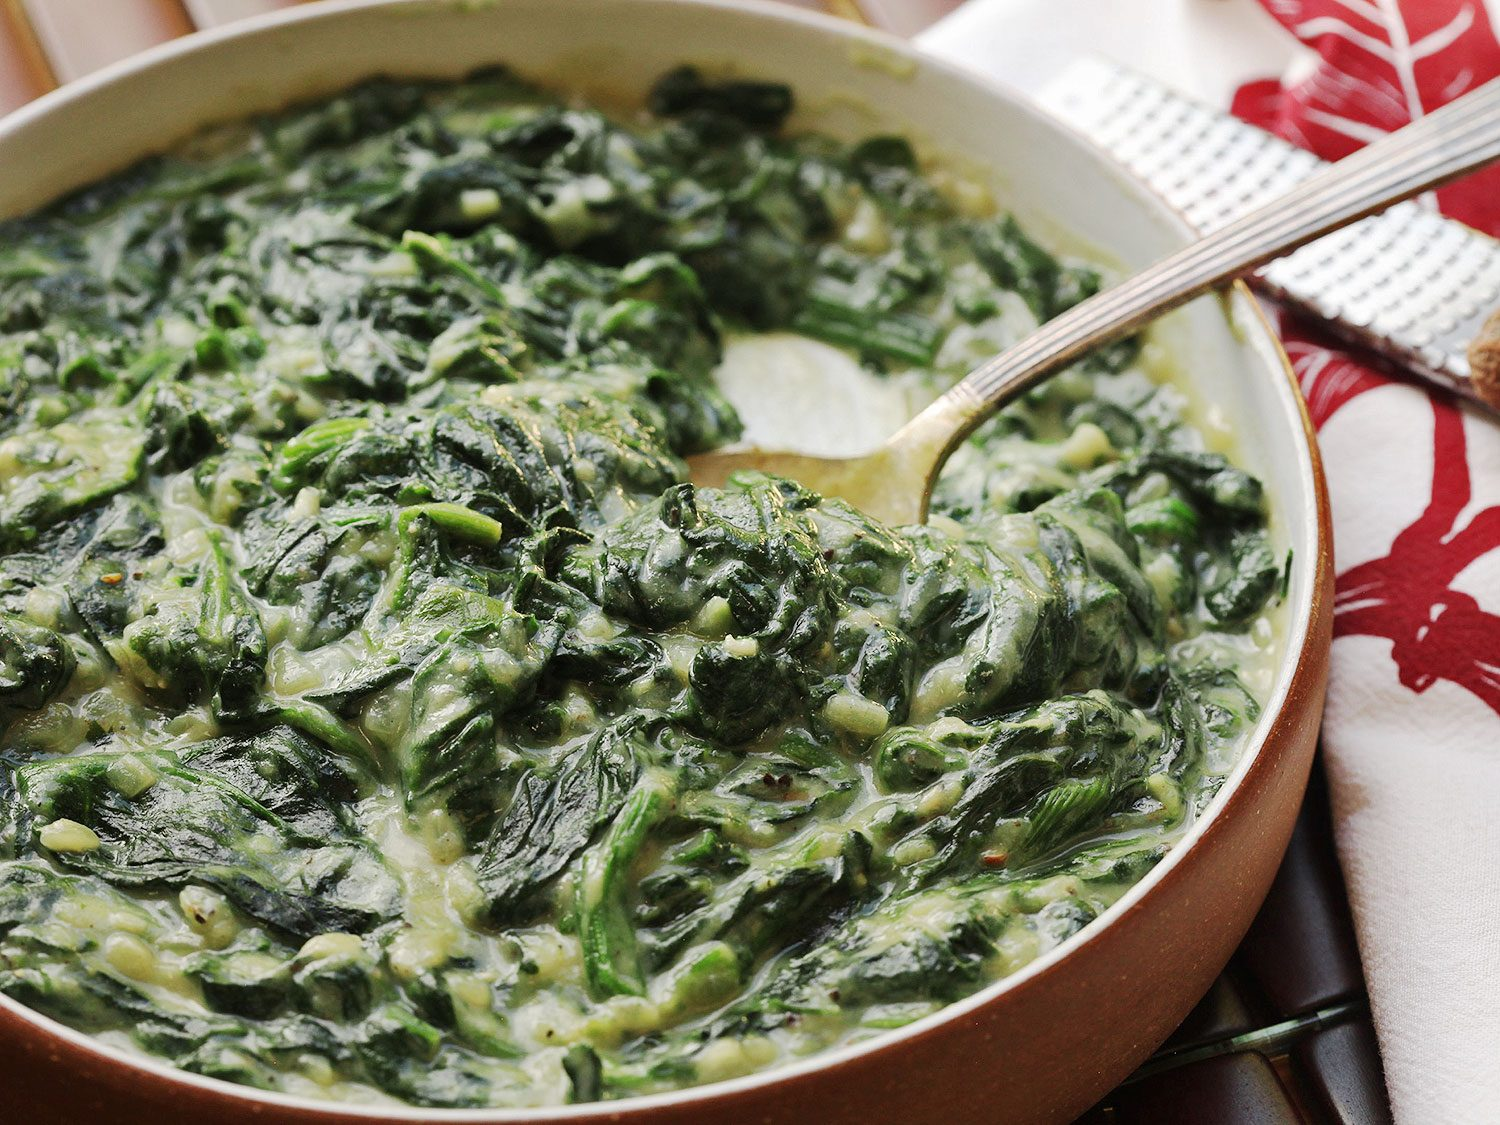 20170210-vegan-creamed-spinach-15-1500x1125.jpg